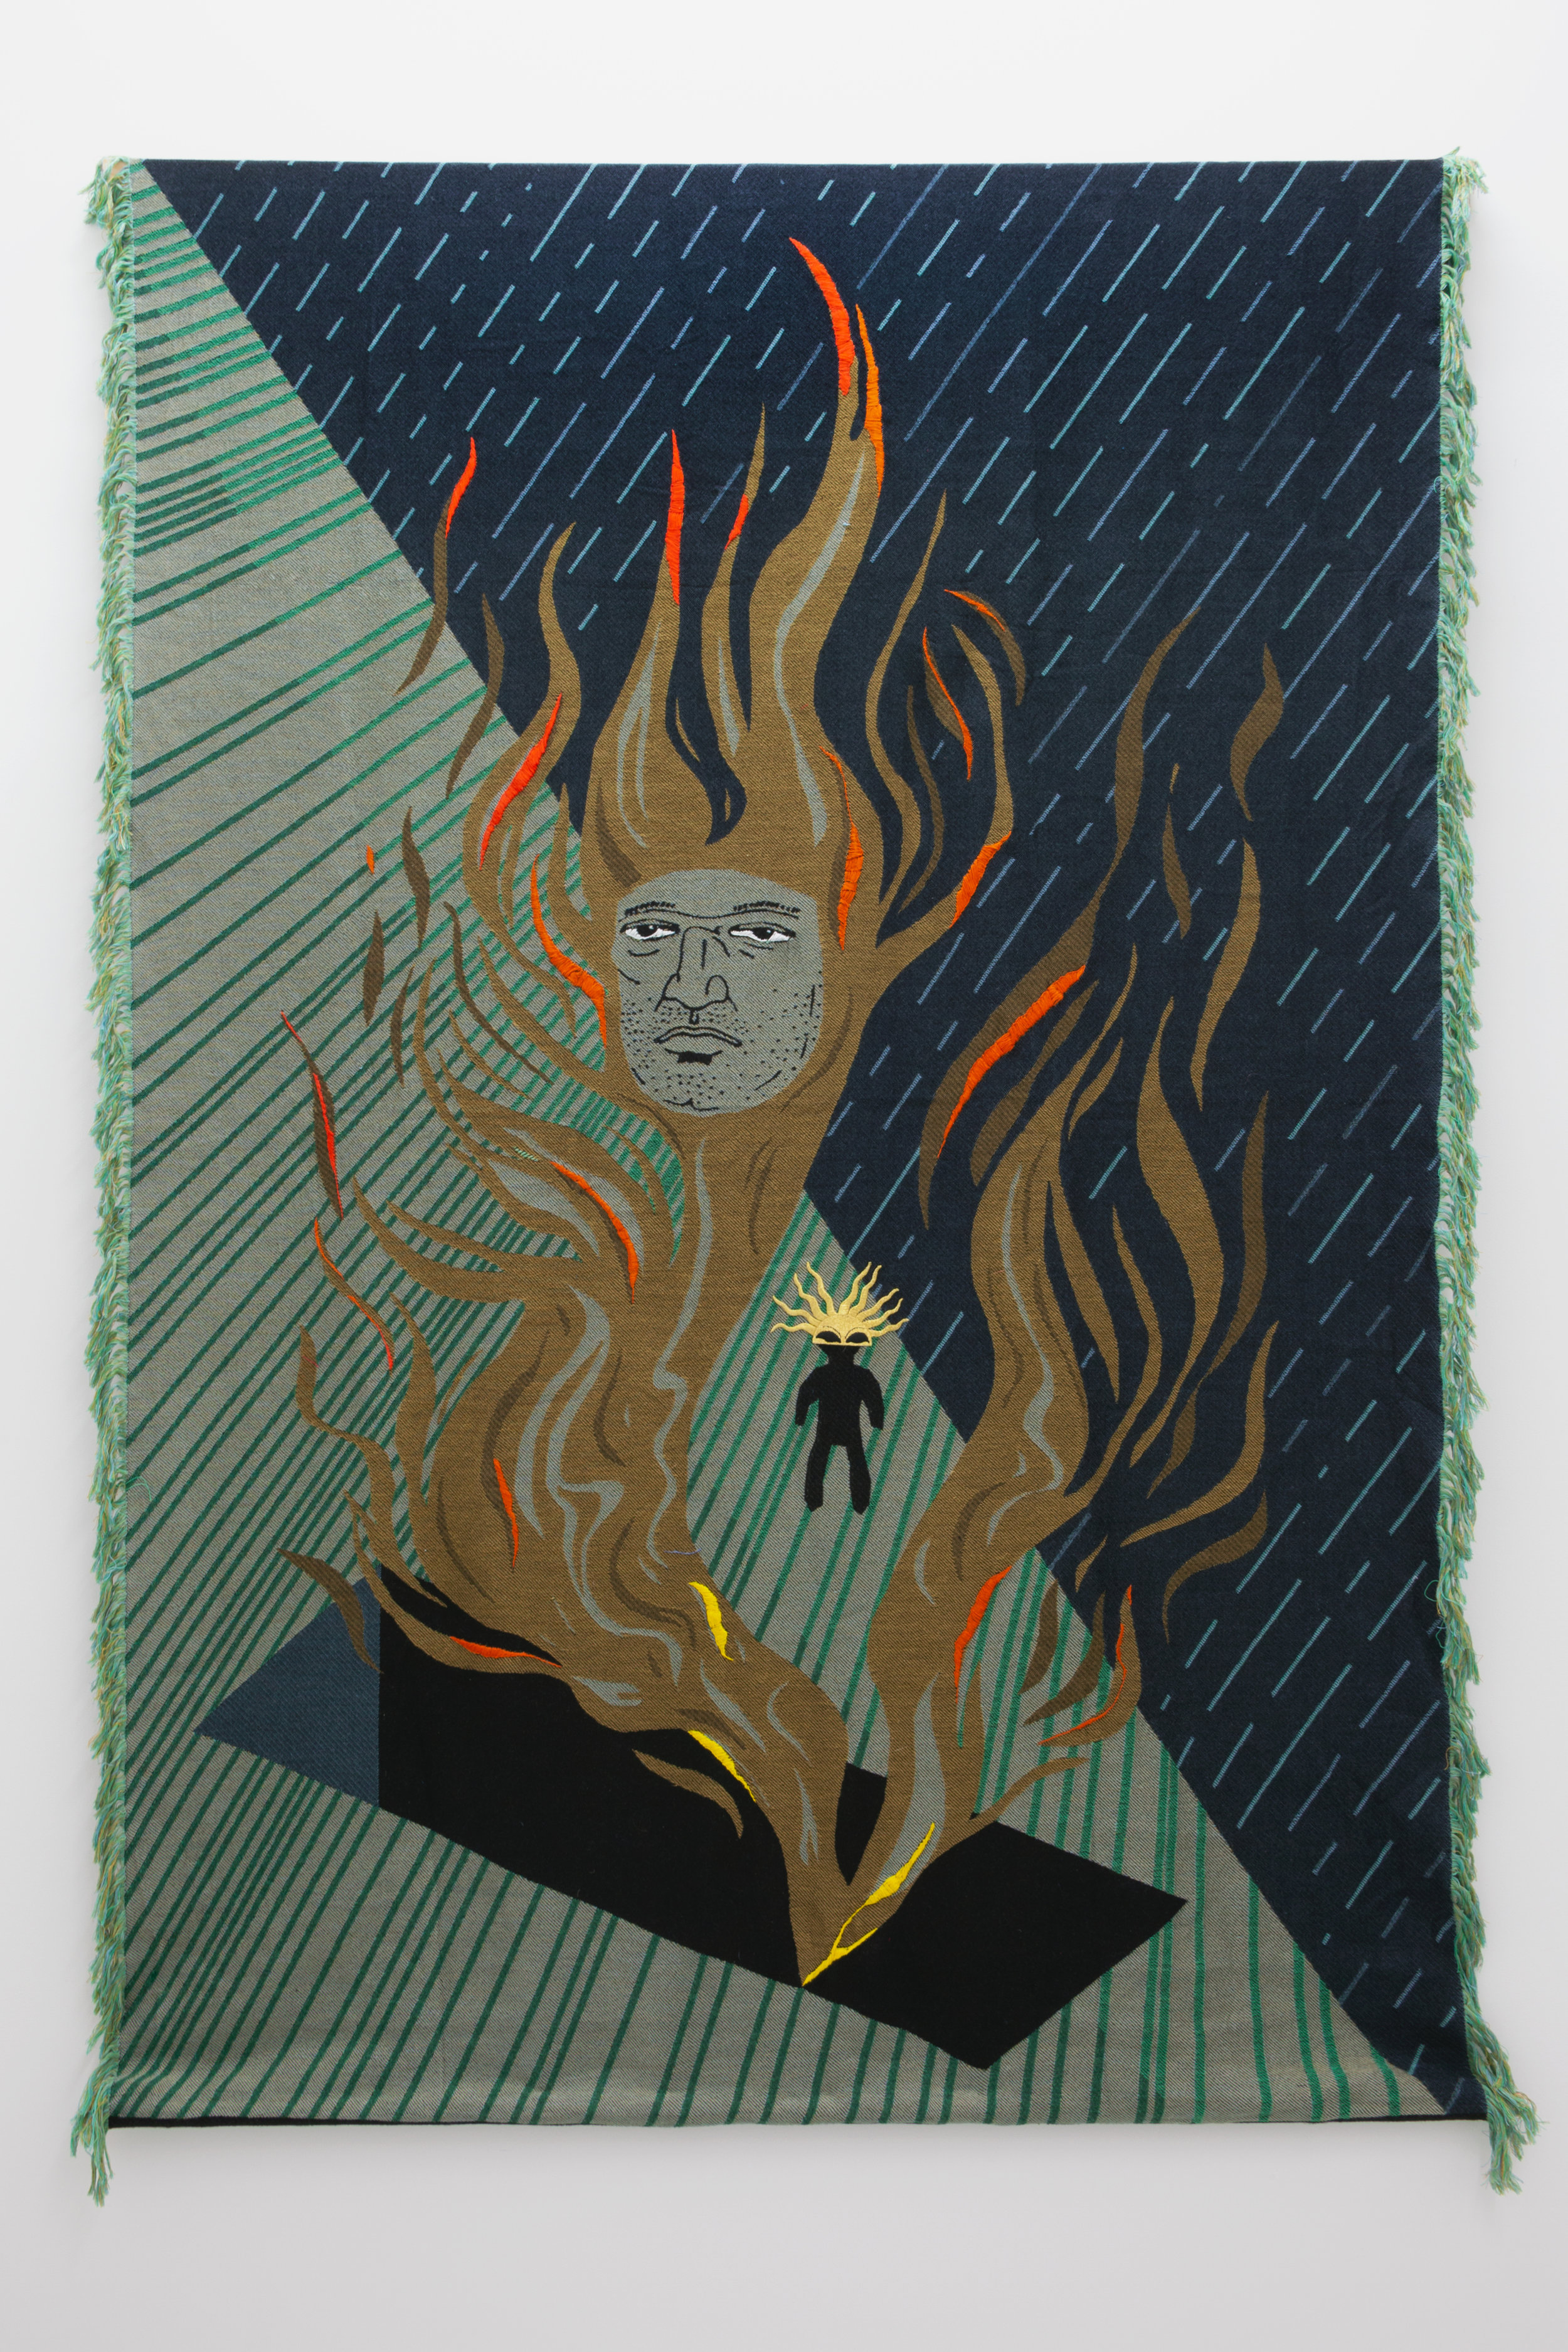 Oona Brangam-Snell,  Flaming Tomb , 2019 Jacquard Tapestry with Hand Embroidery, 67x48x1in